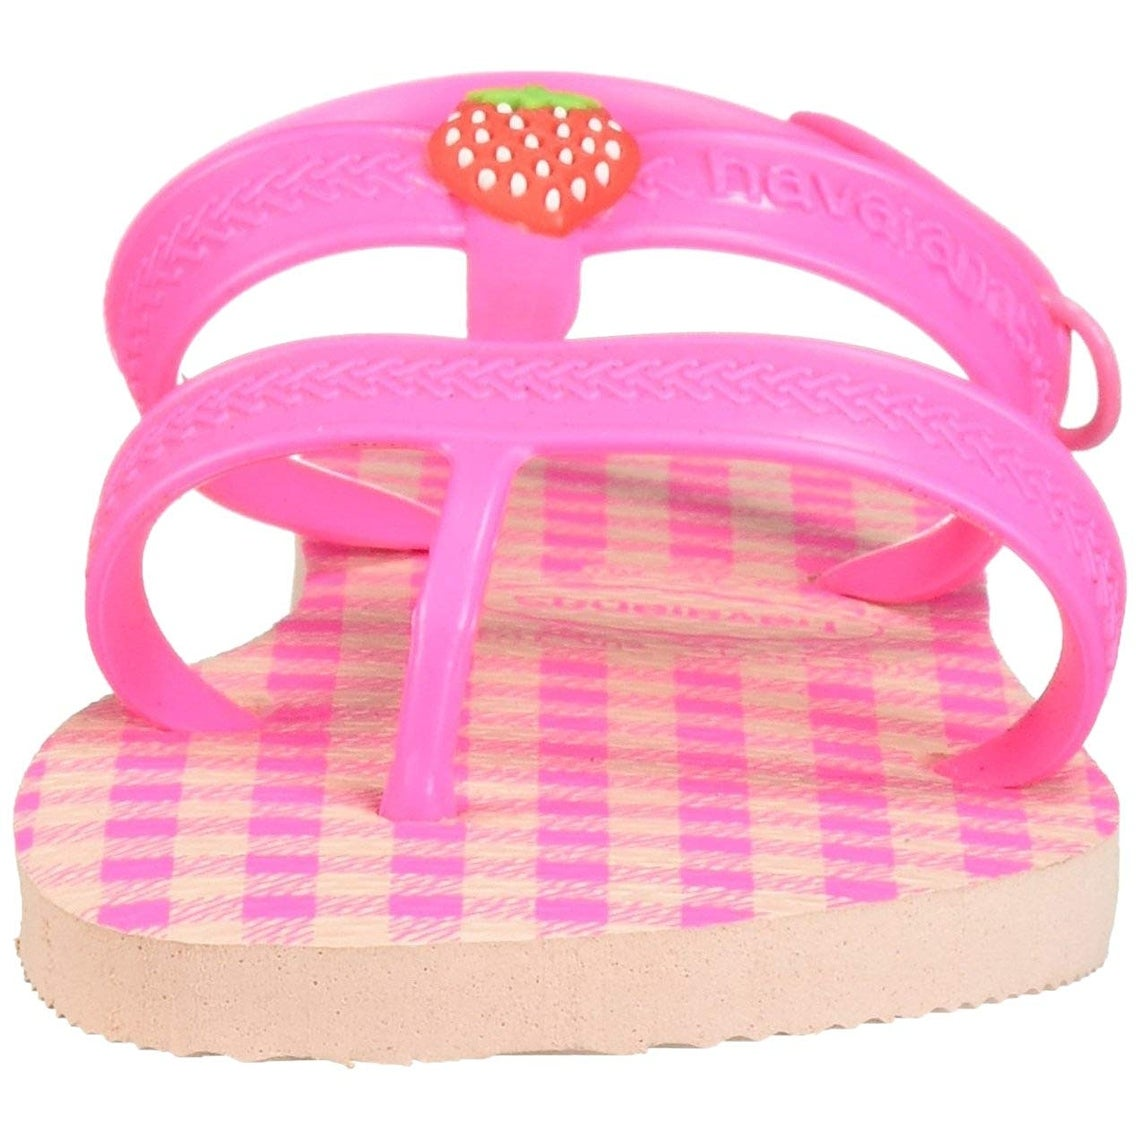 Havaianas Kids Joy Spring Sandal Ballet Rose Shocking Pink - Ballet Rose Shocking  Pink dc5a312b1358